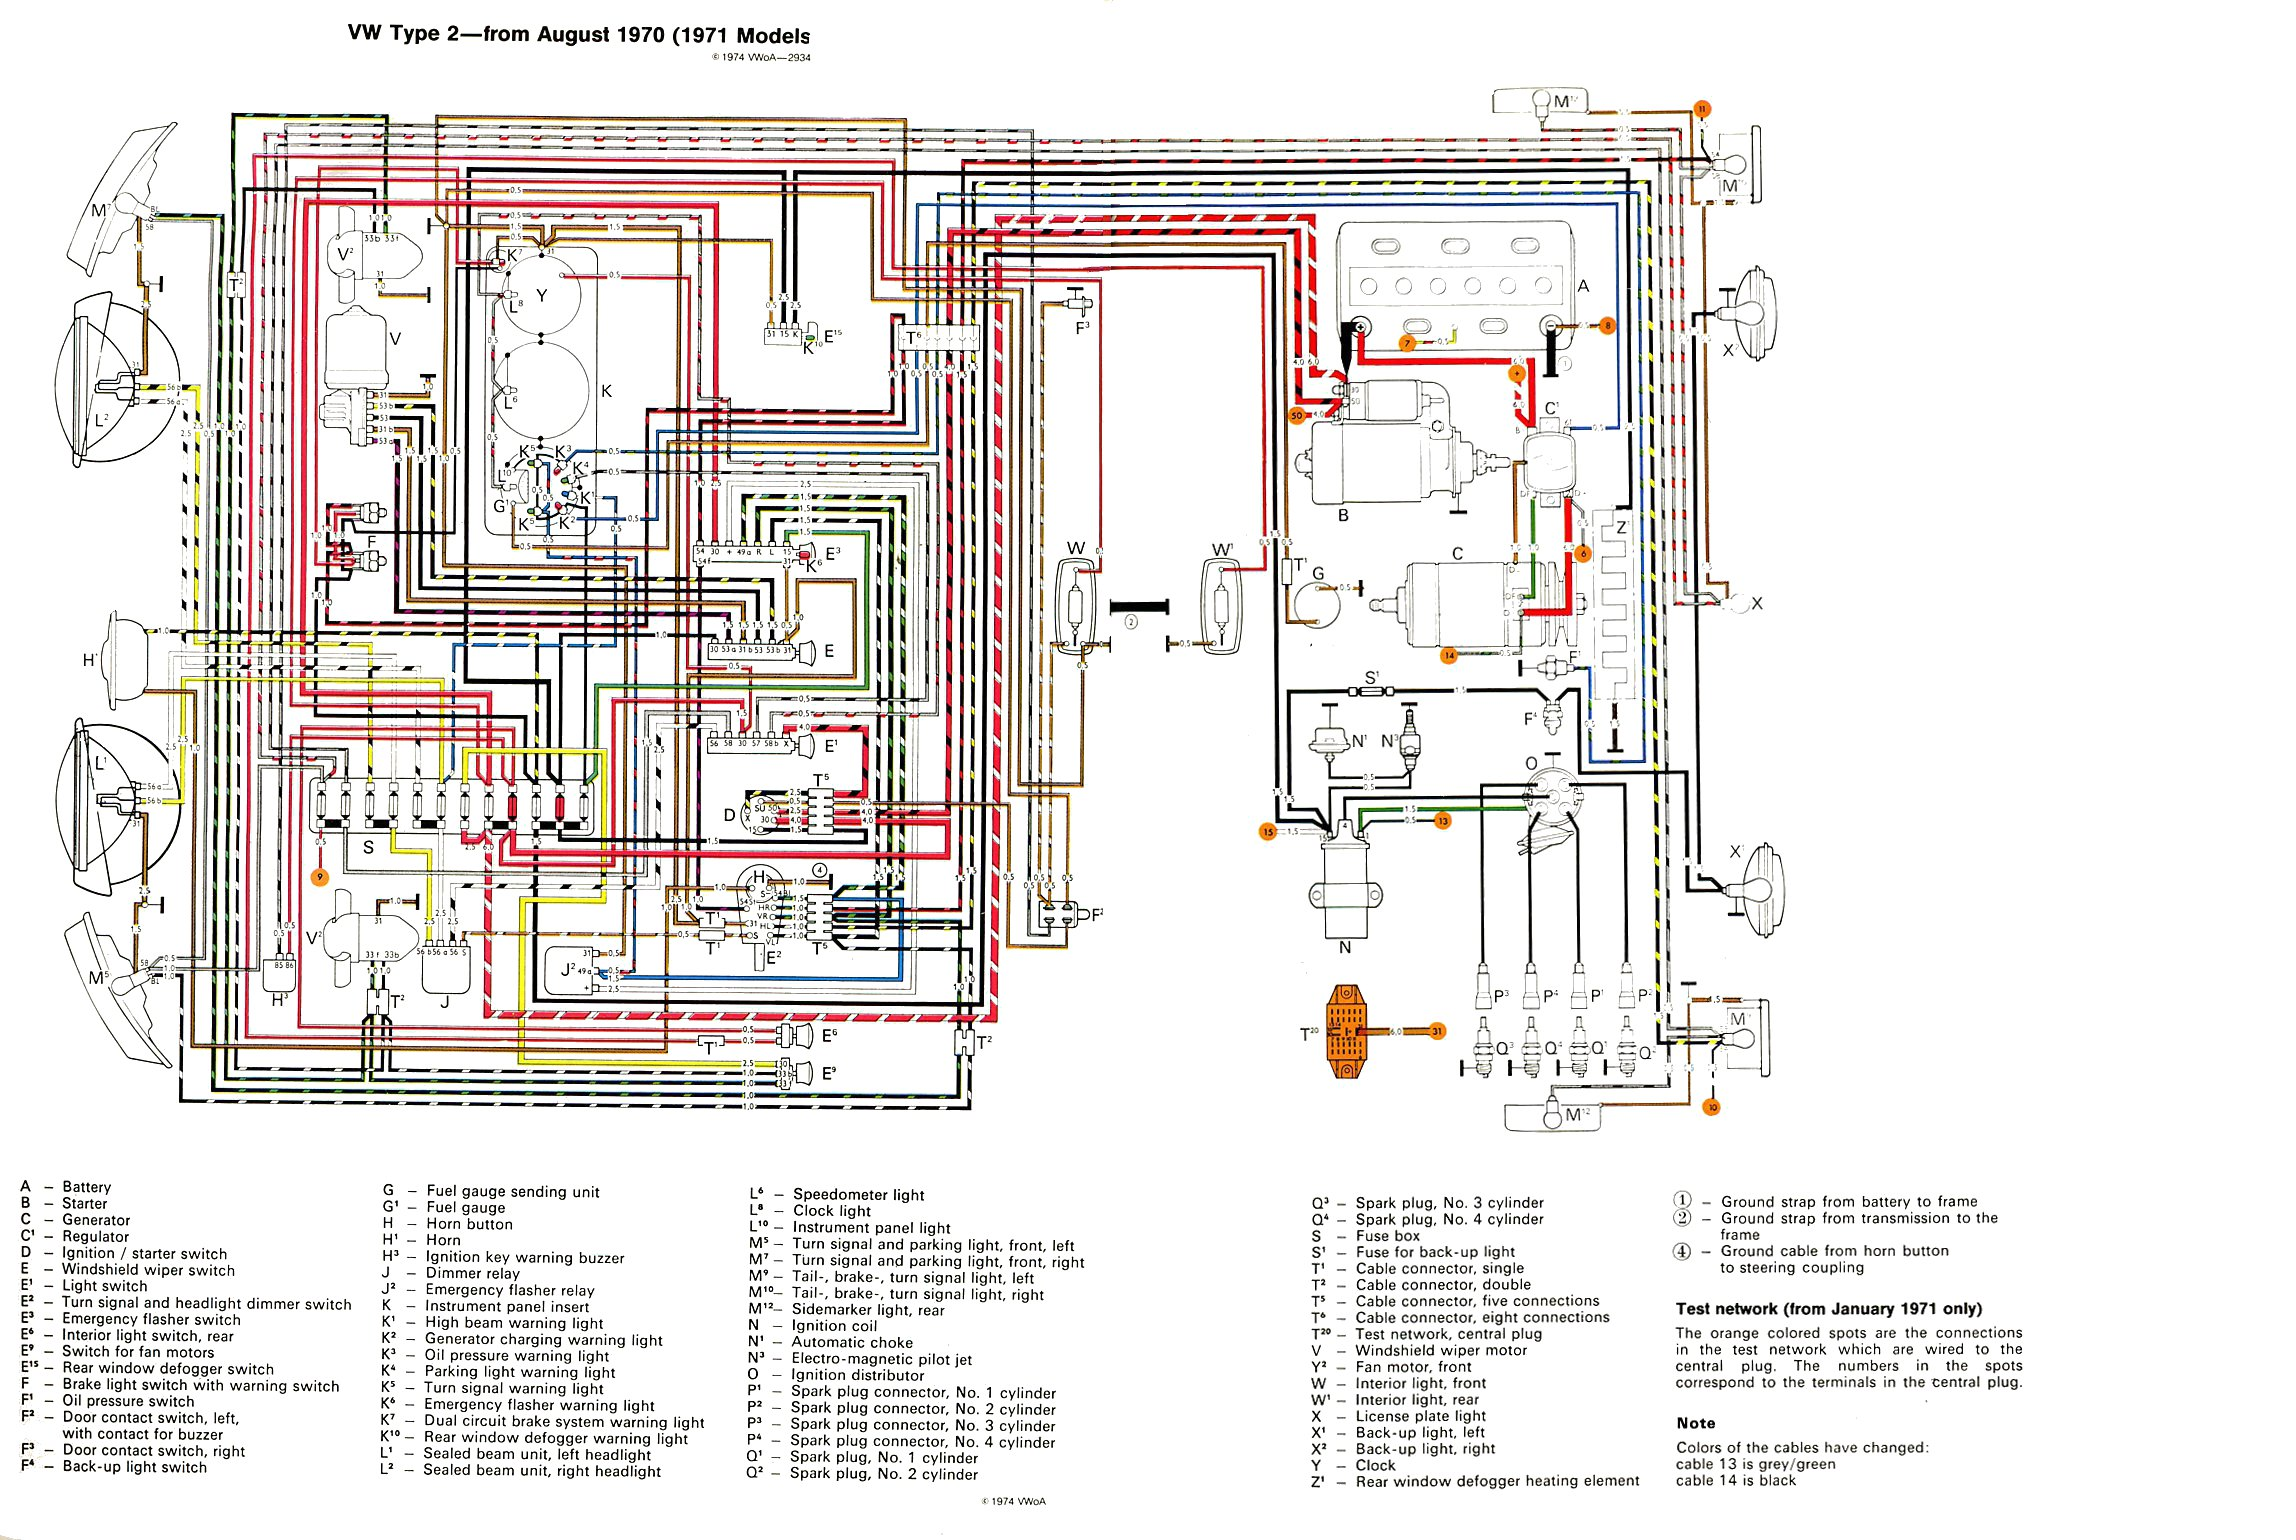 thesamba com type 2 wiring diagrams kill switch wiring diagram alternator briggs amp stratton kill switch wiring diagram